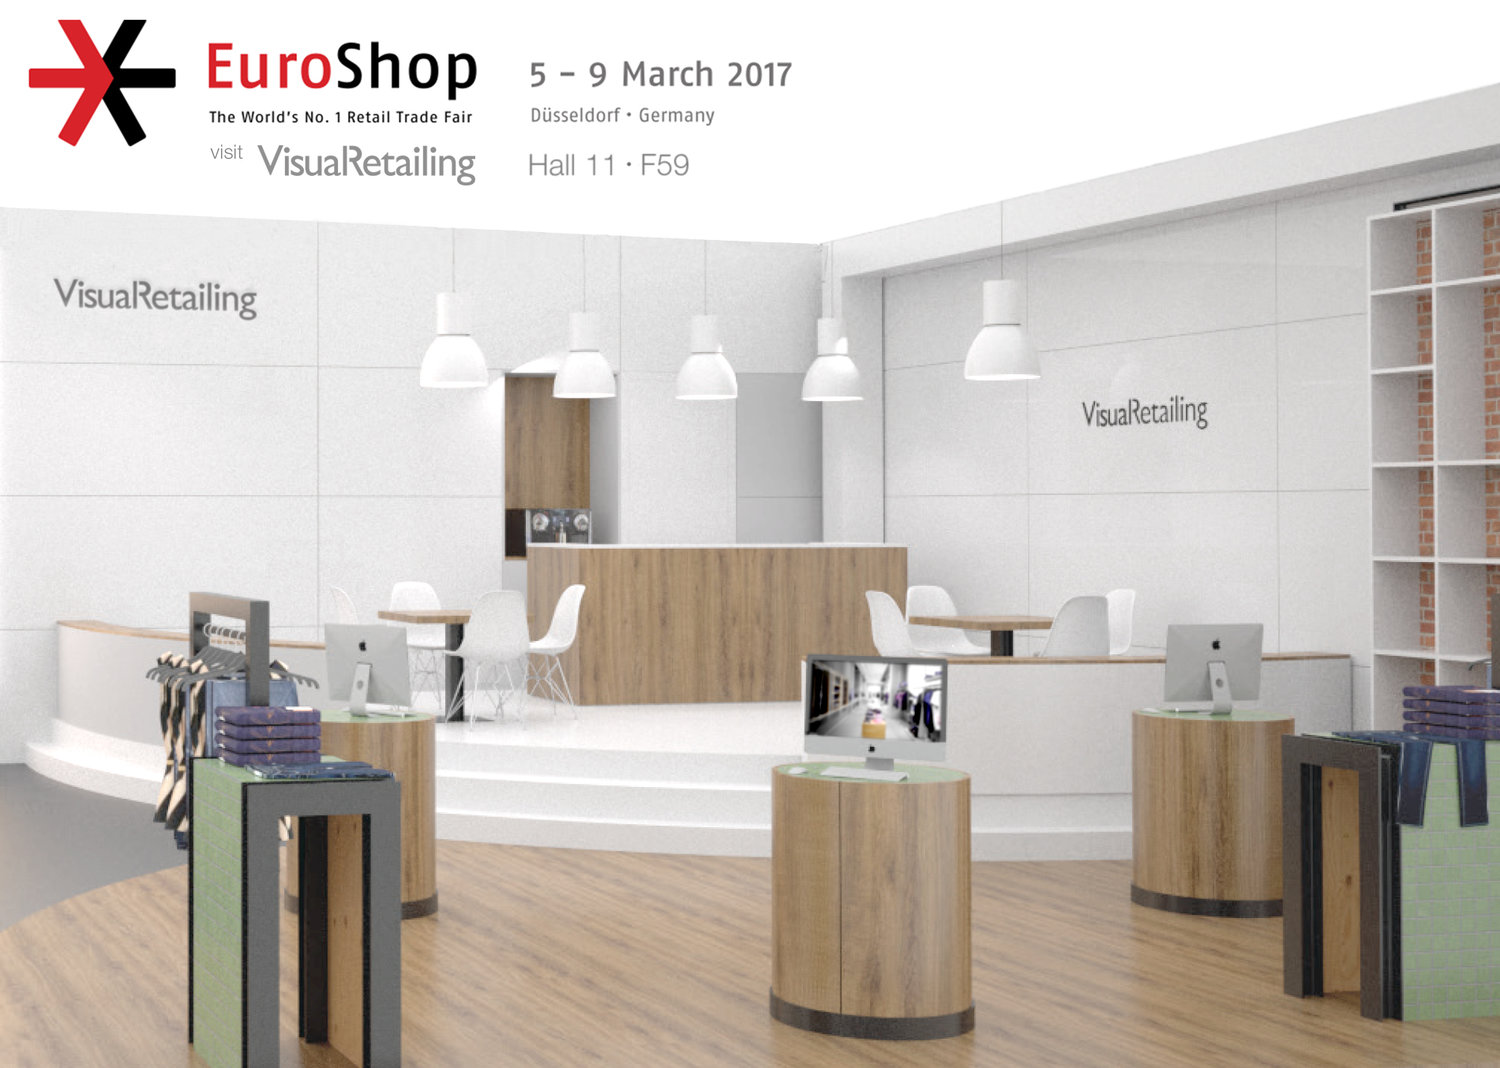 Rendering preview of Visual Retailing's EuroShop 2017 booth